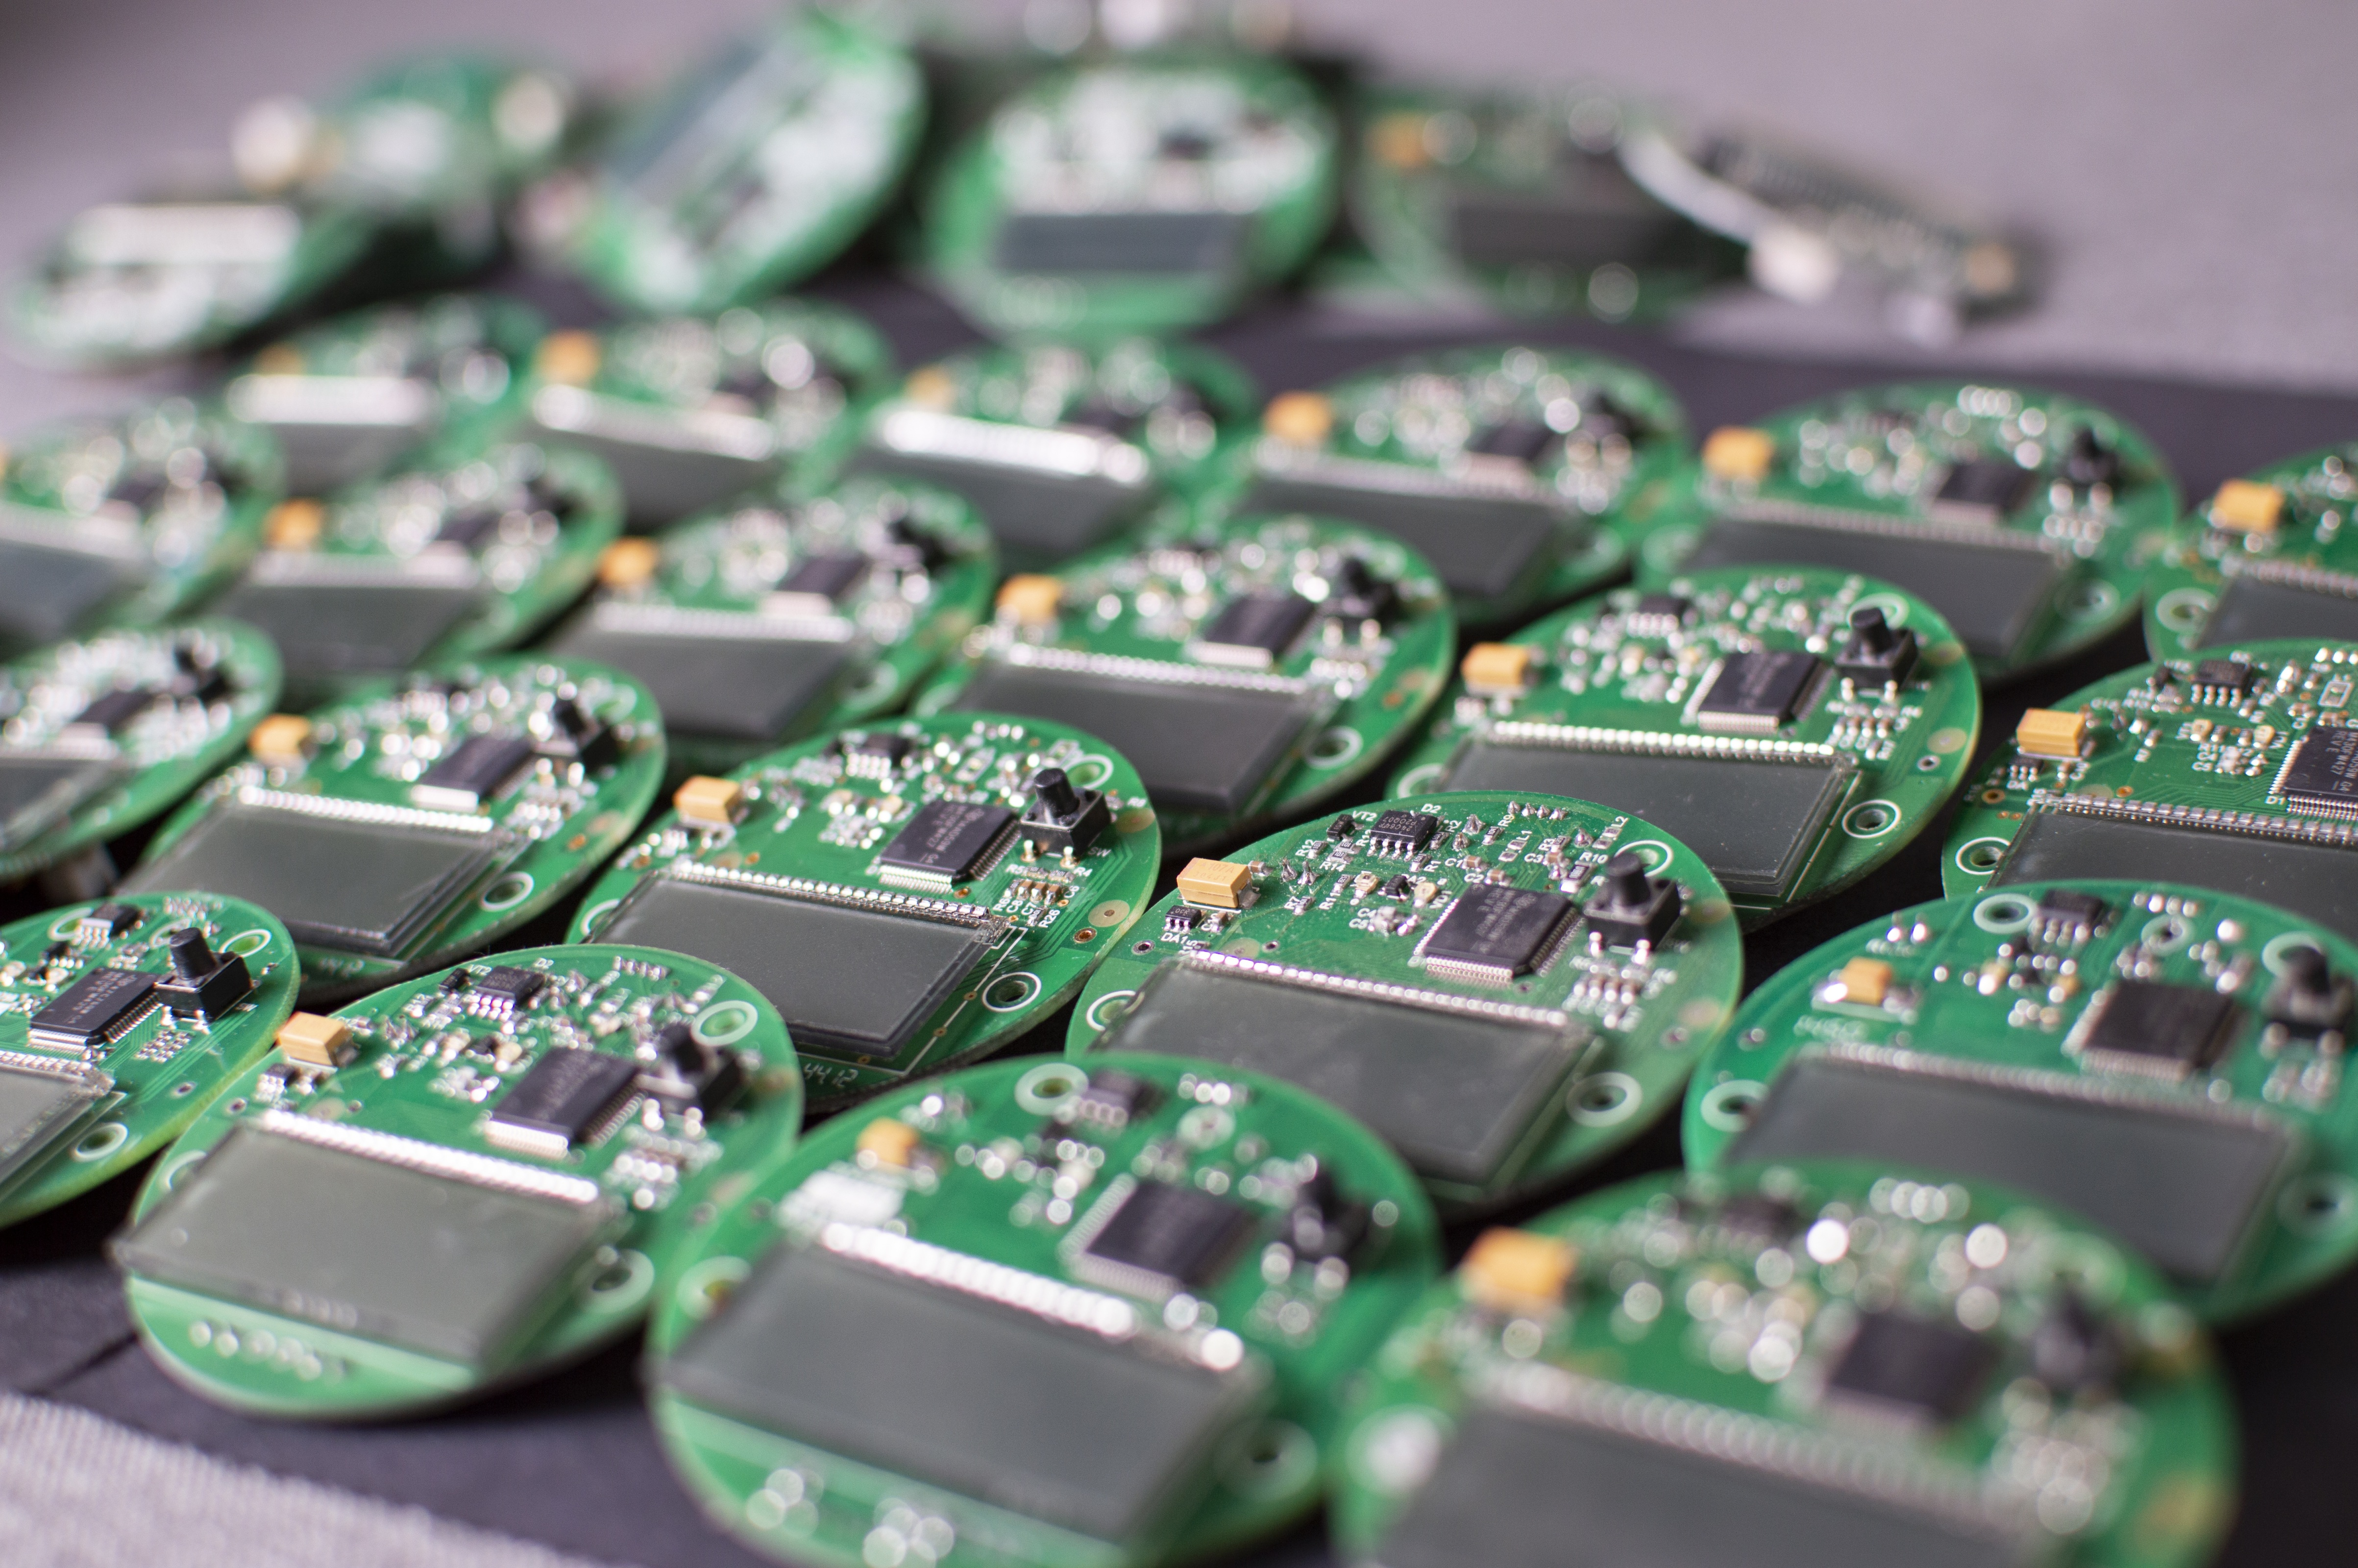 Small IoT Circuit Boards with Chips